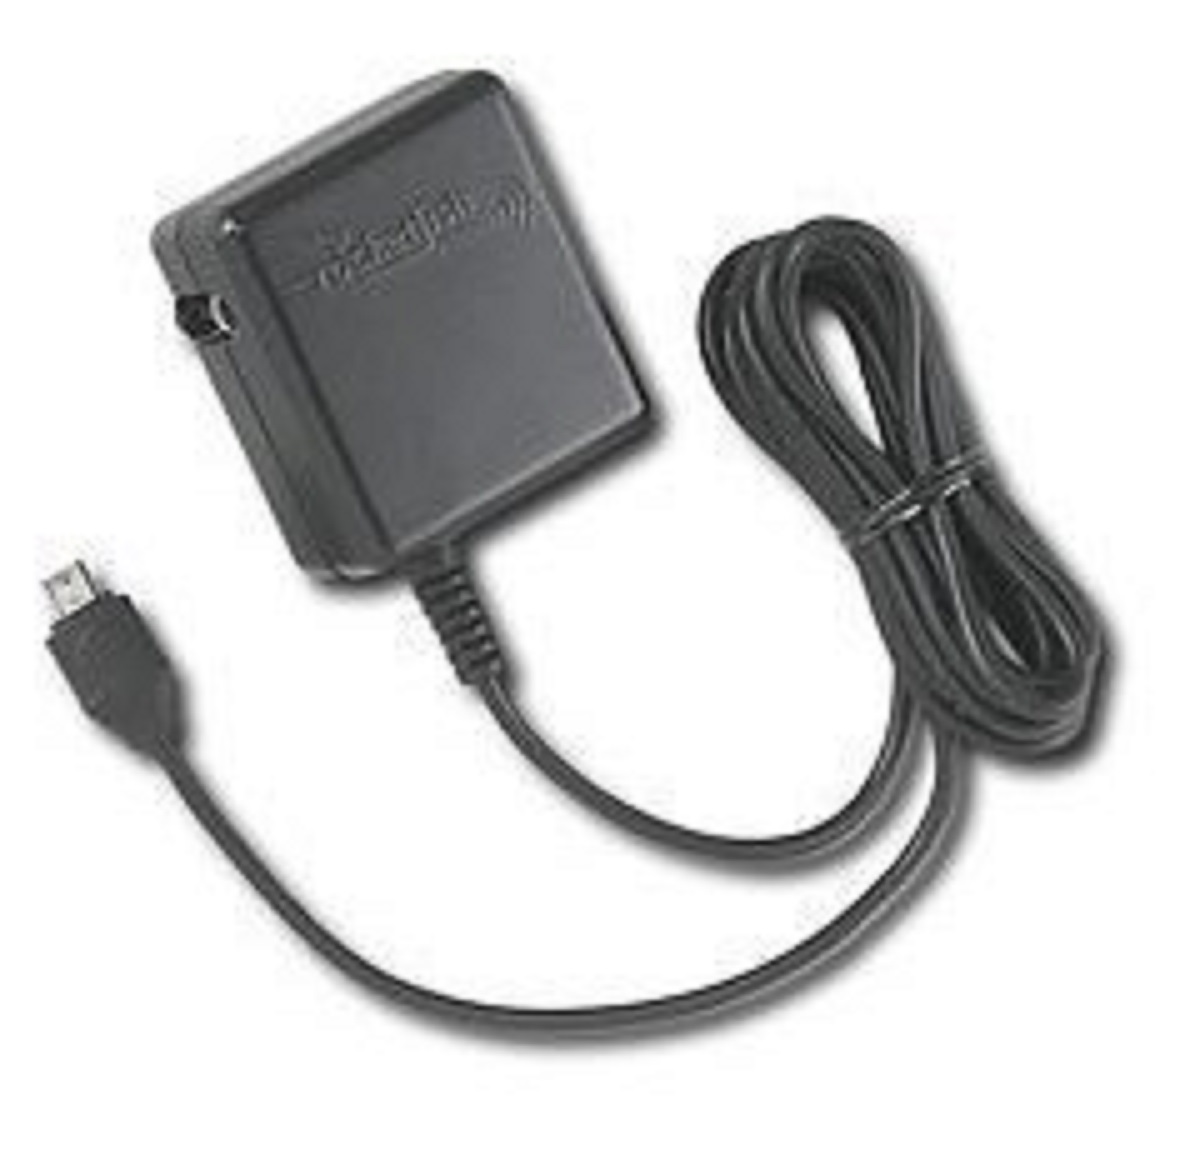 Rockestfish MINI USB A/C wall charger rf-mnb90 1 pack Black